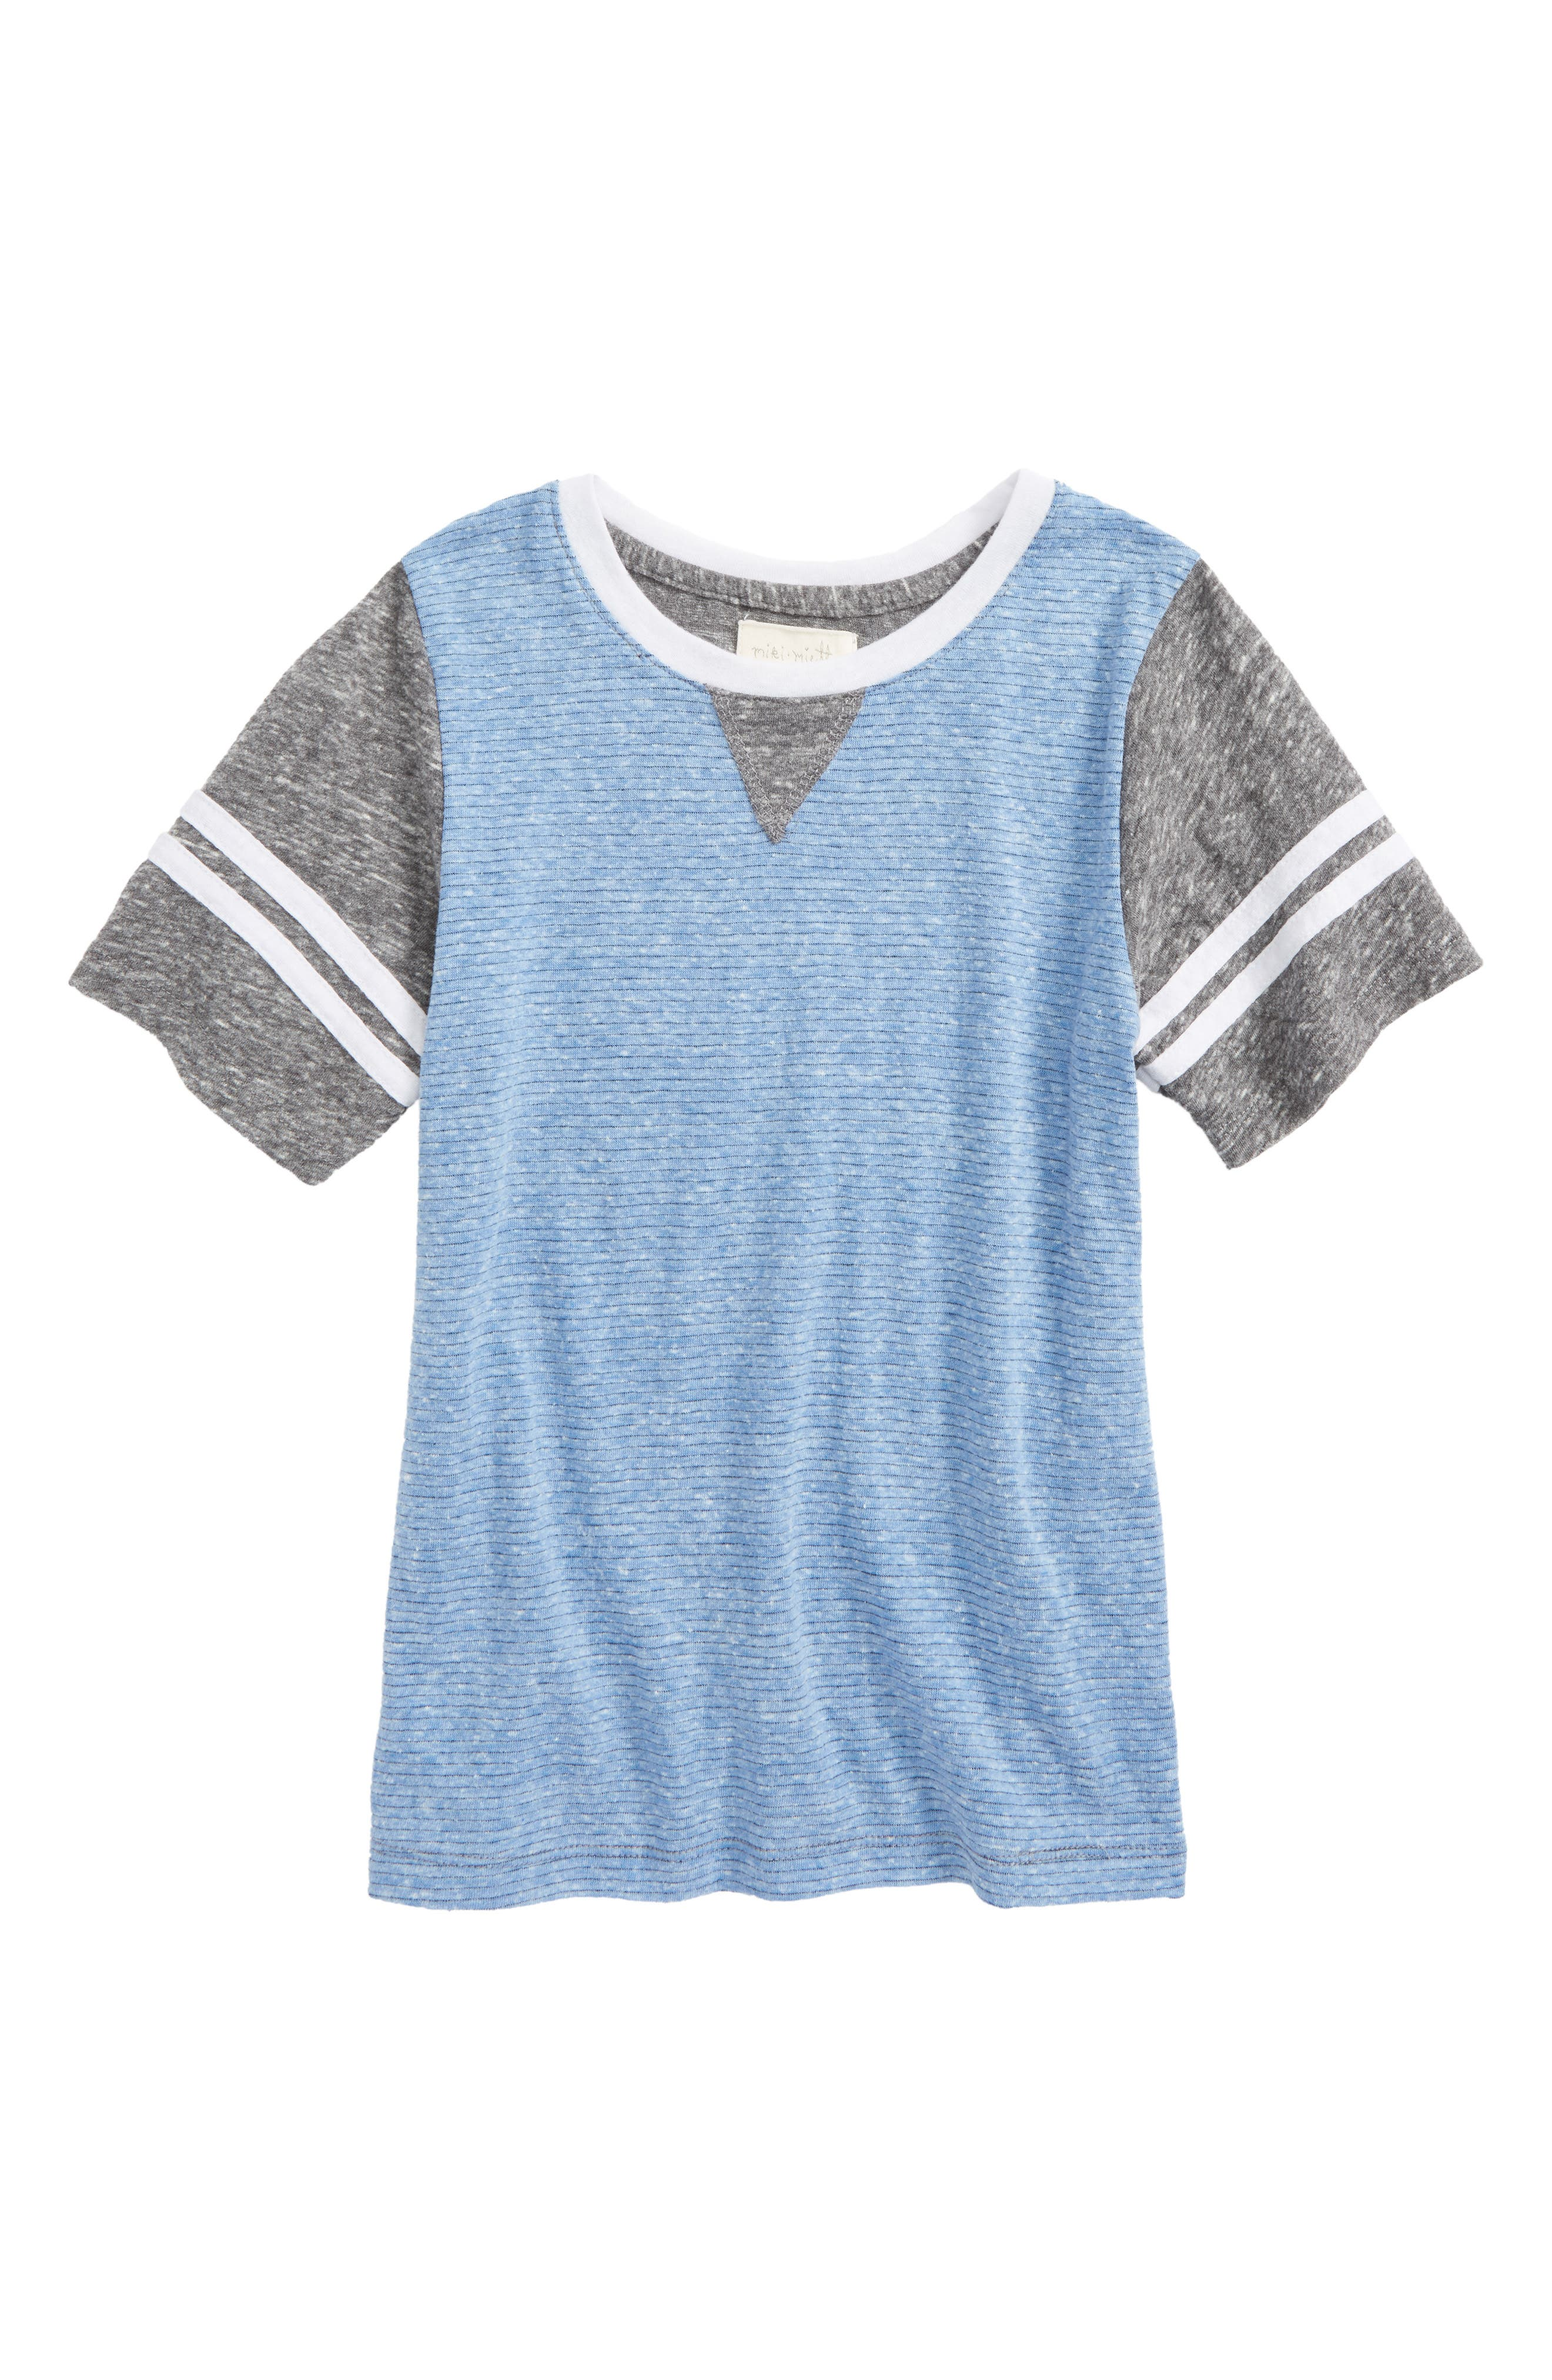 James T-Shirt,                         Main,                         color, 401